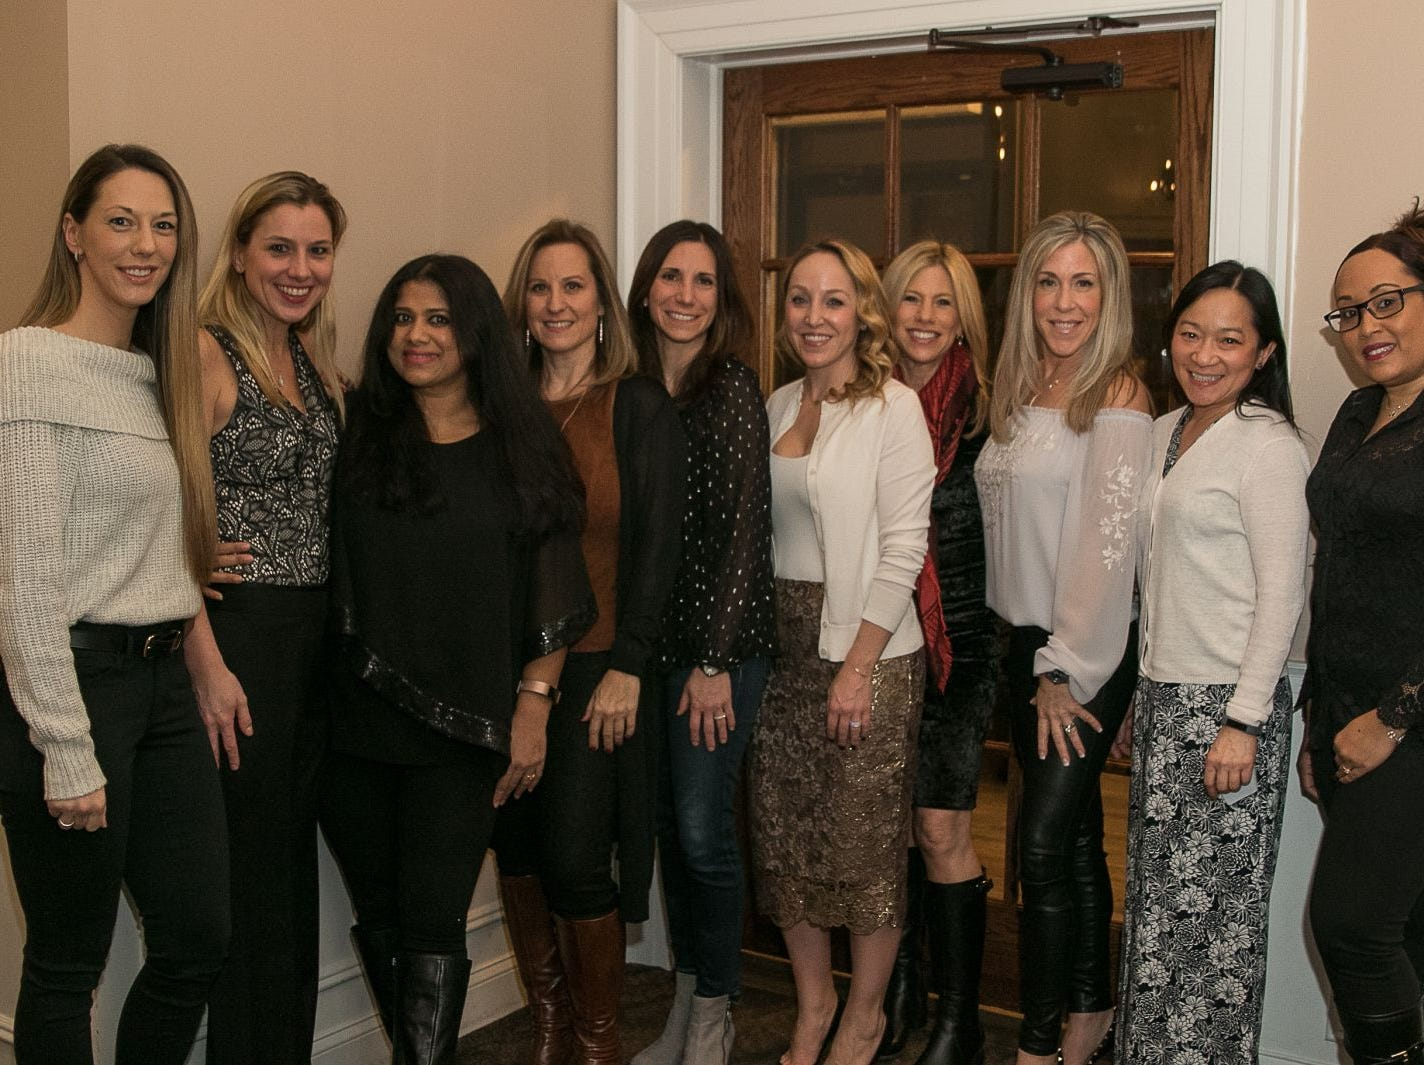 The Inductees. The Saddle River Valley Junior Woman's Club held an inductee dinnerfor incoming members at Bellisimo Restaurante in Montvale. 01/23/2019